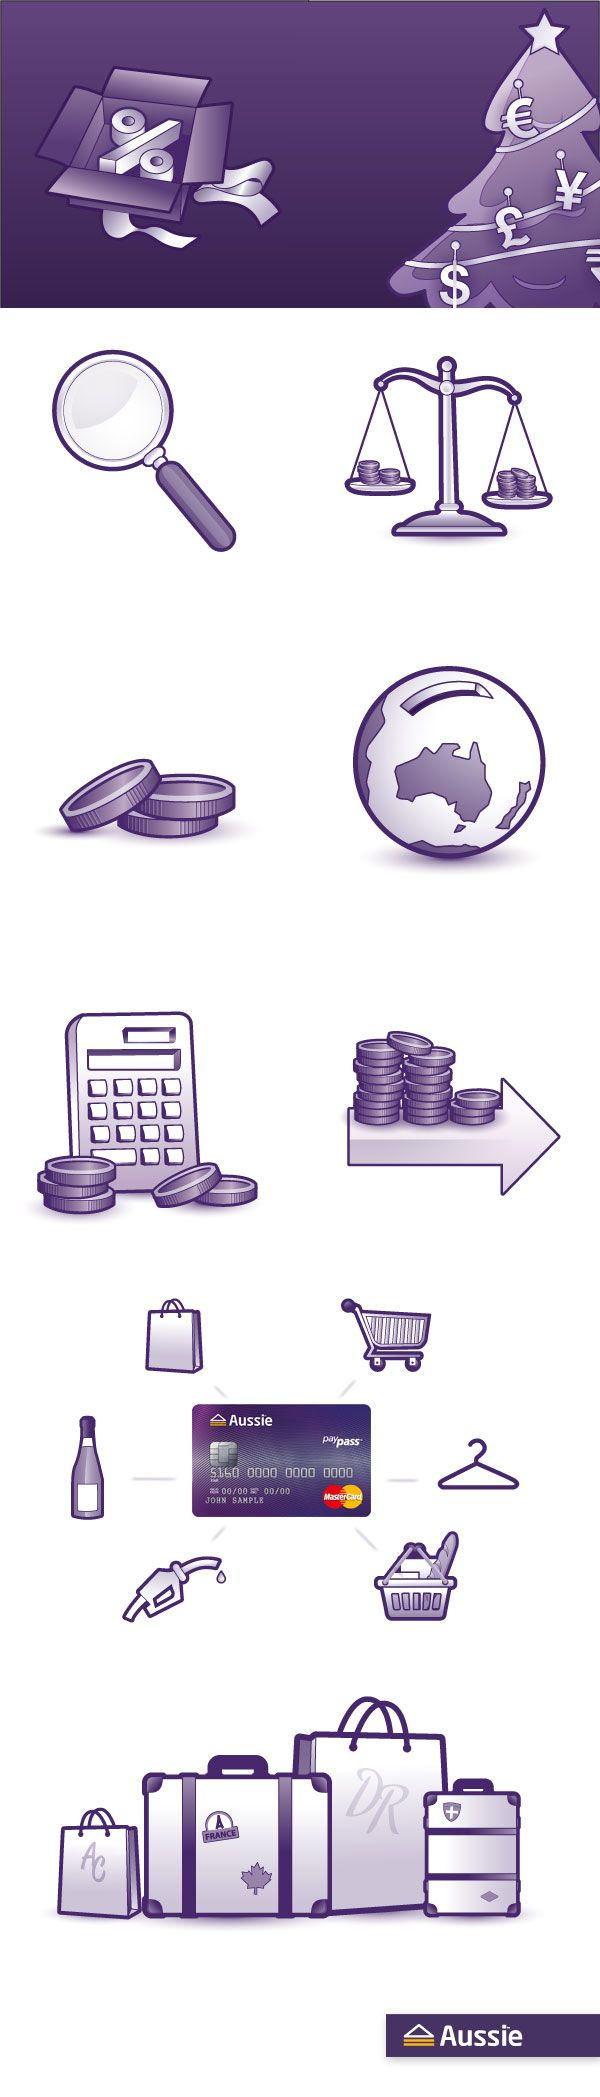 Illustration of icons for Aussie